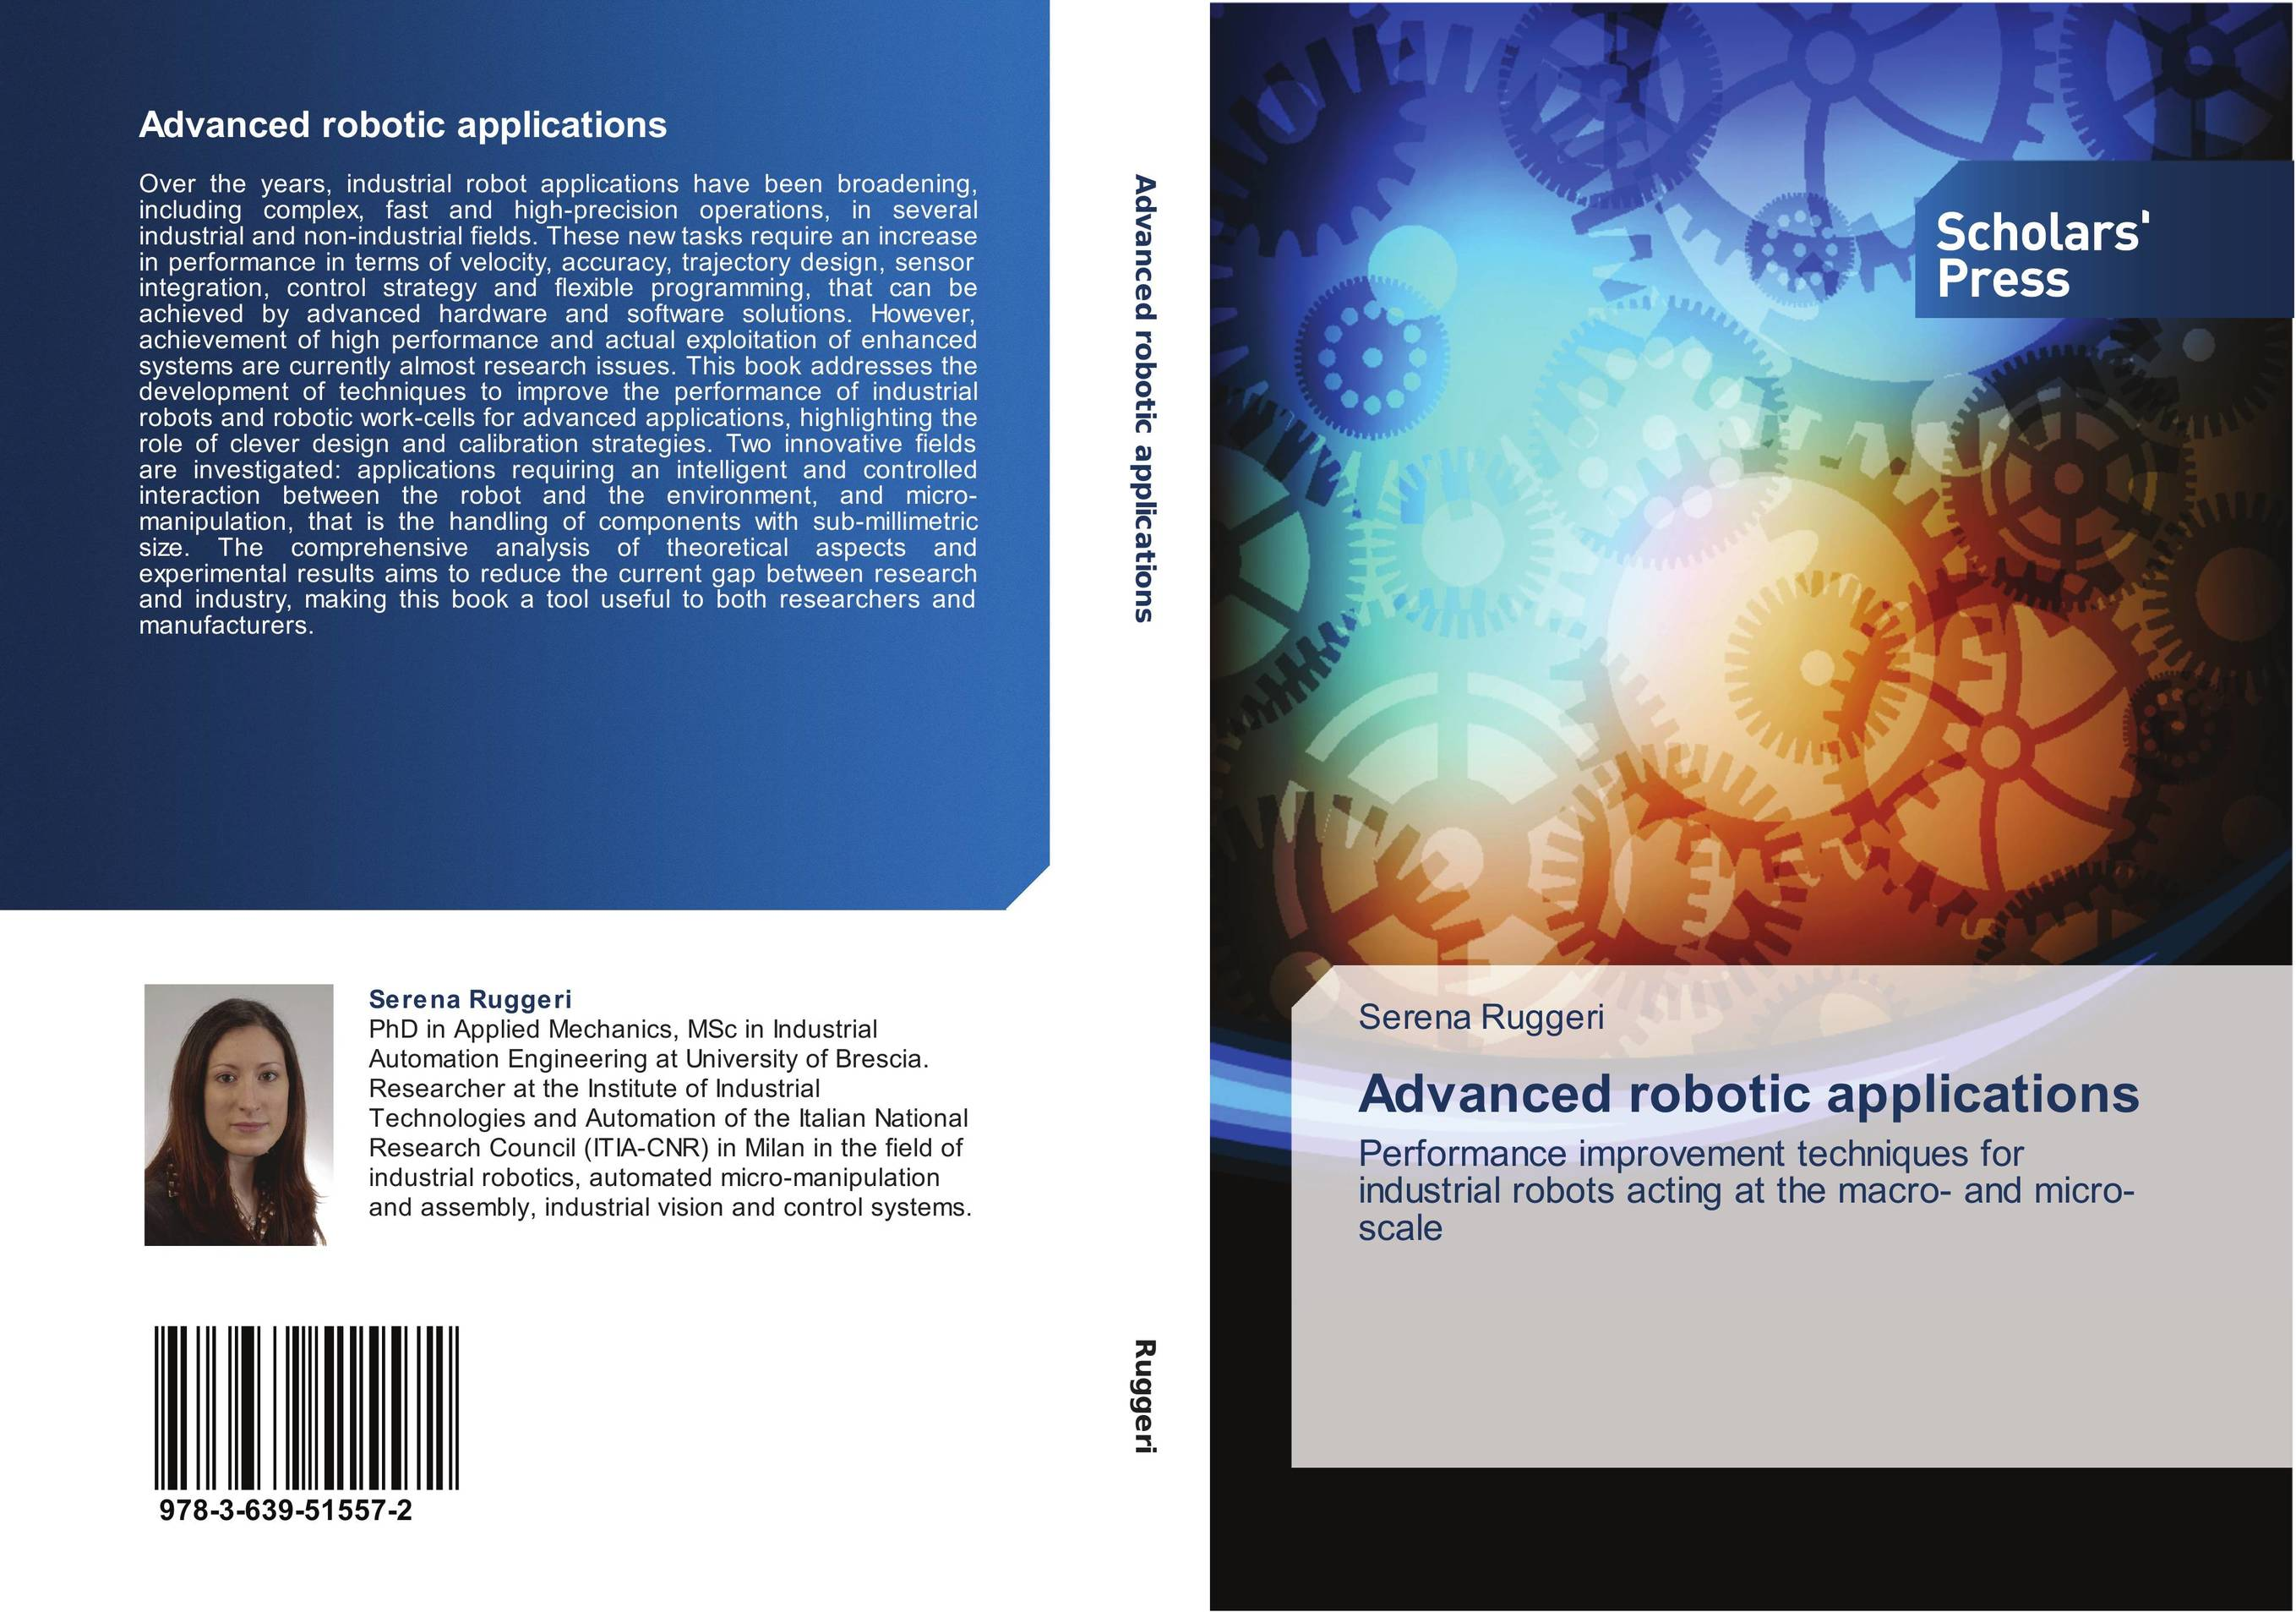 9783639515572 Advanced robotic applications Serena Ruggeri